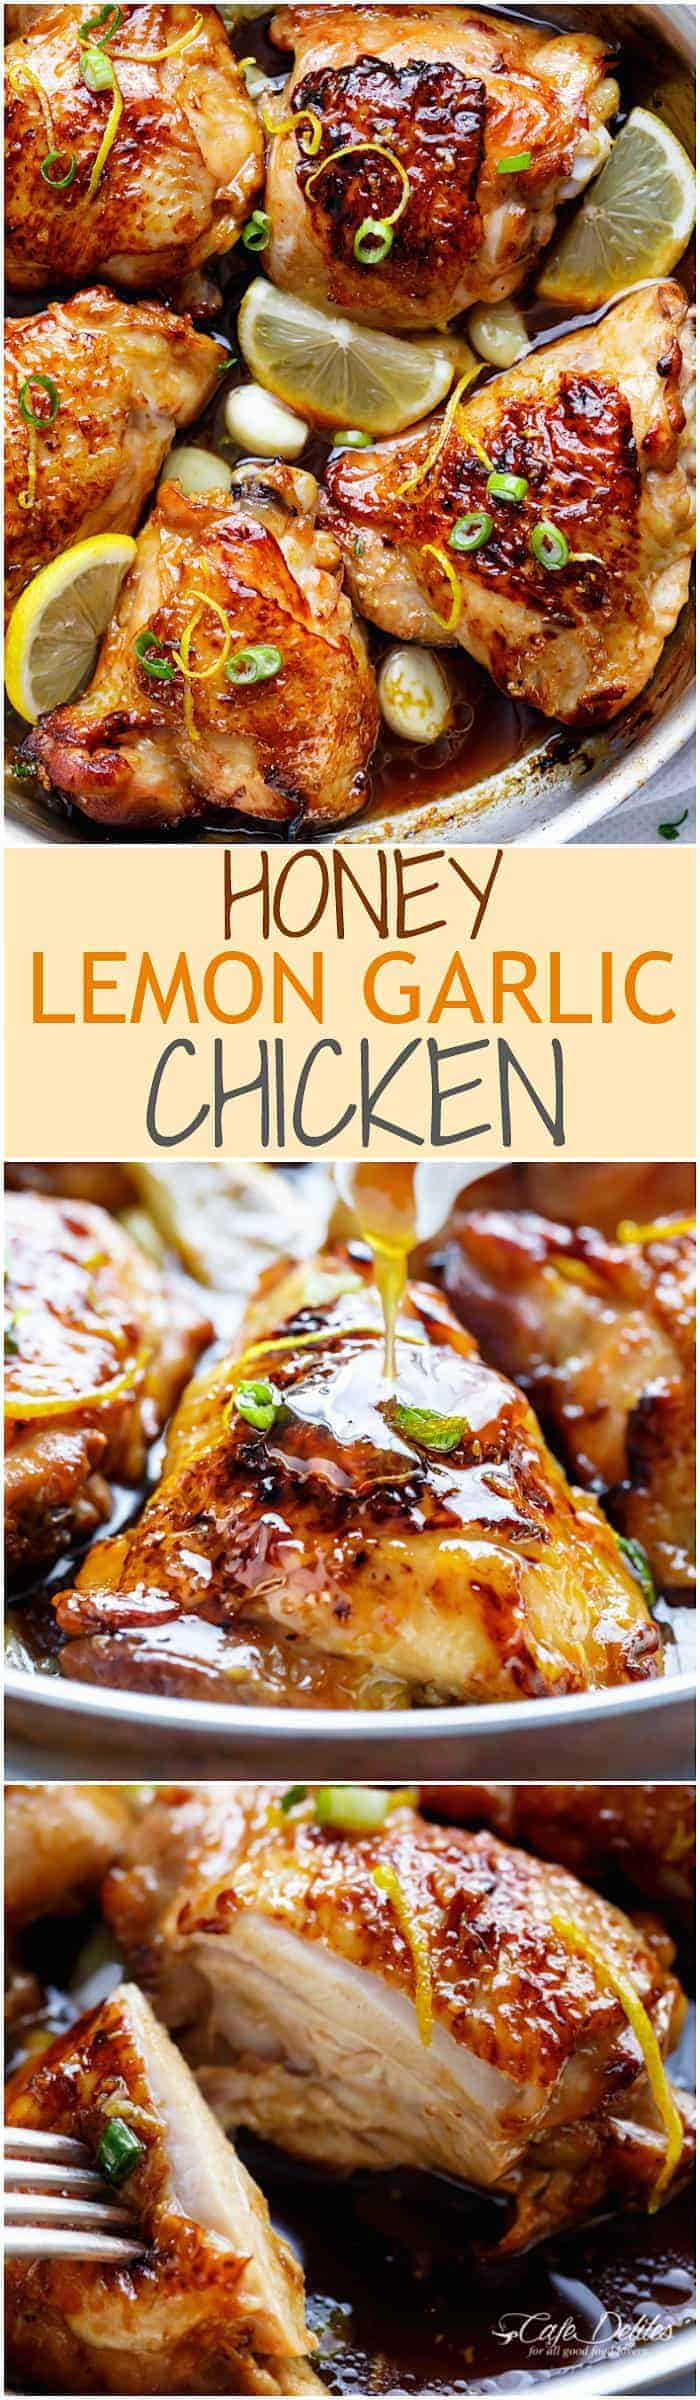 Juicy Honey Lemon Garlic Chicken with a crispy skin and a sweet, sticky sauce with ingredients you have in your kitchen cupboard! | https://cafedelites.com